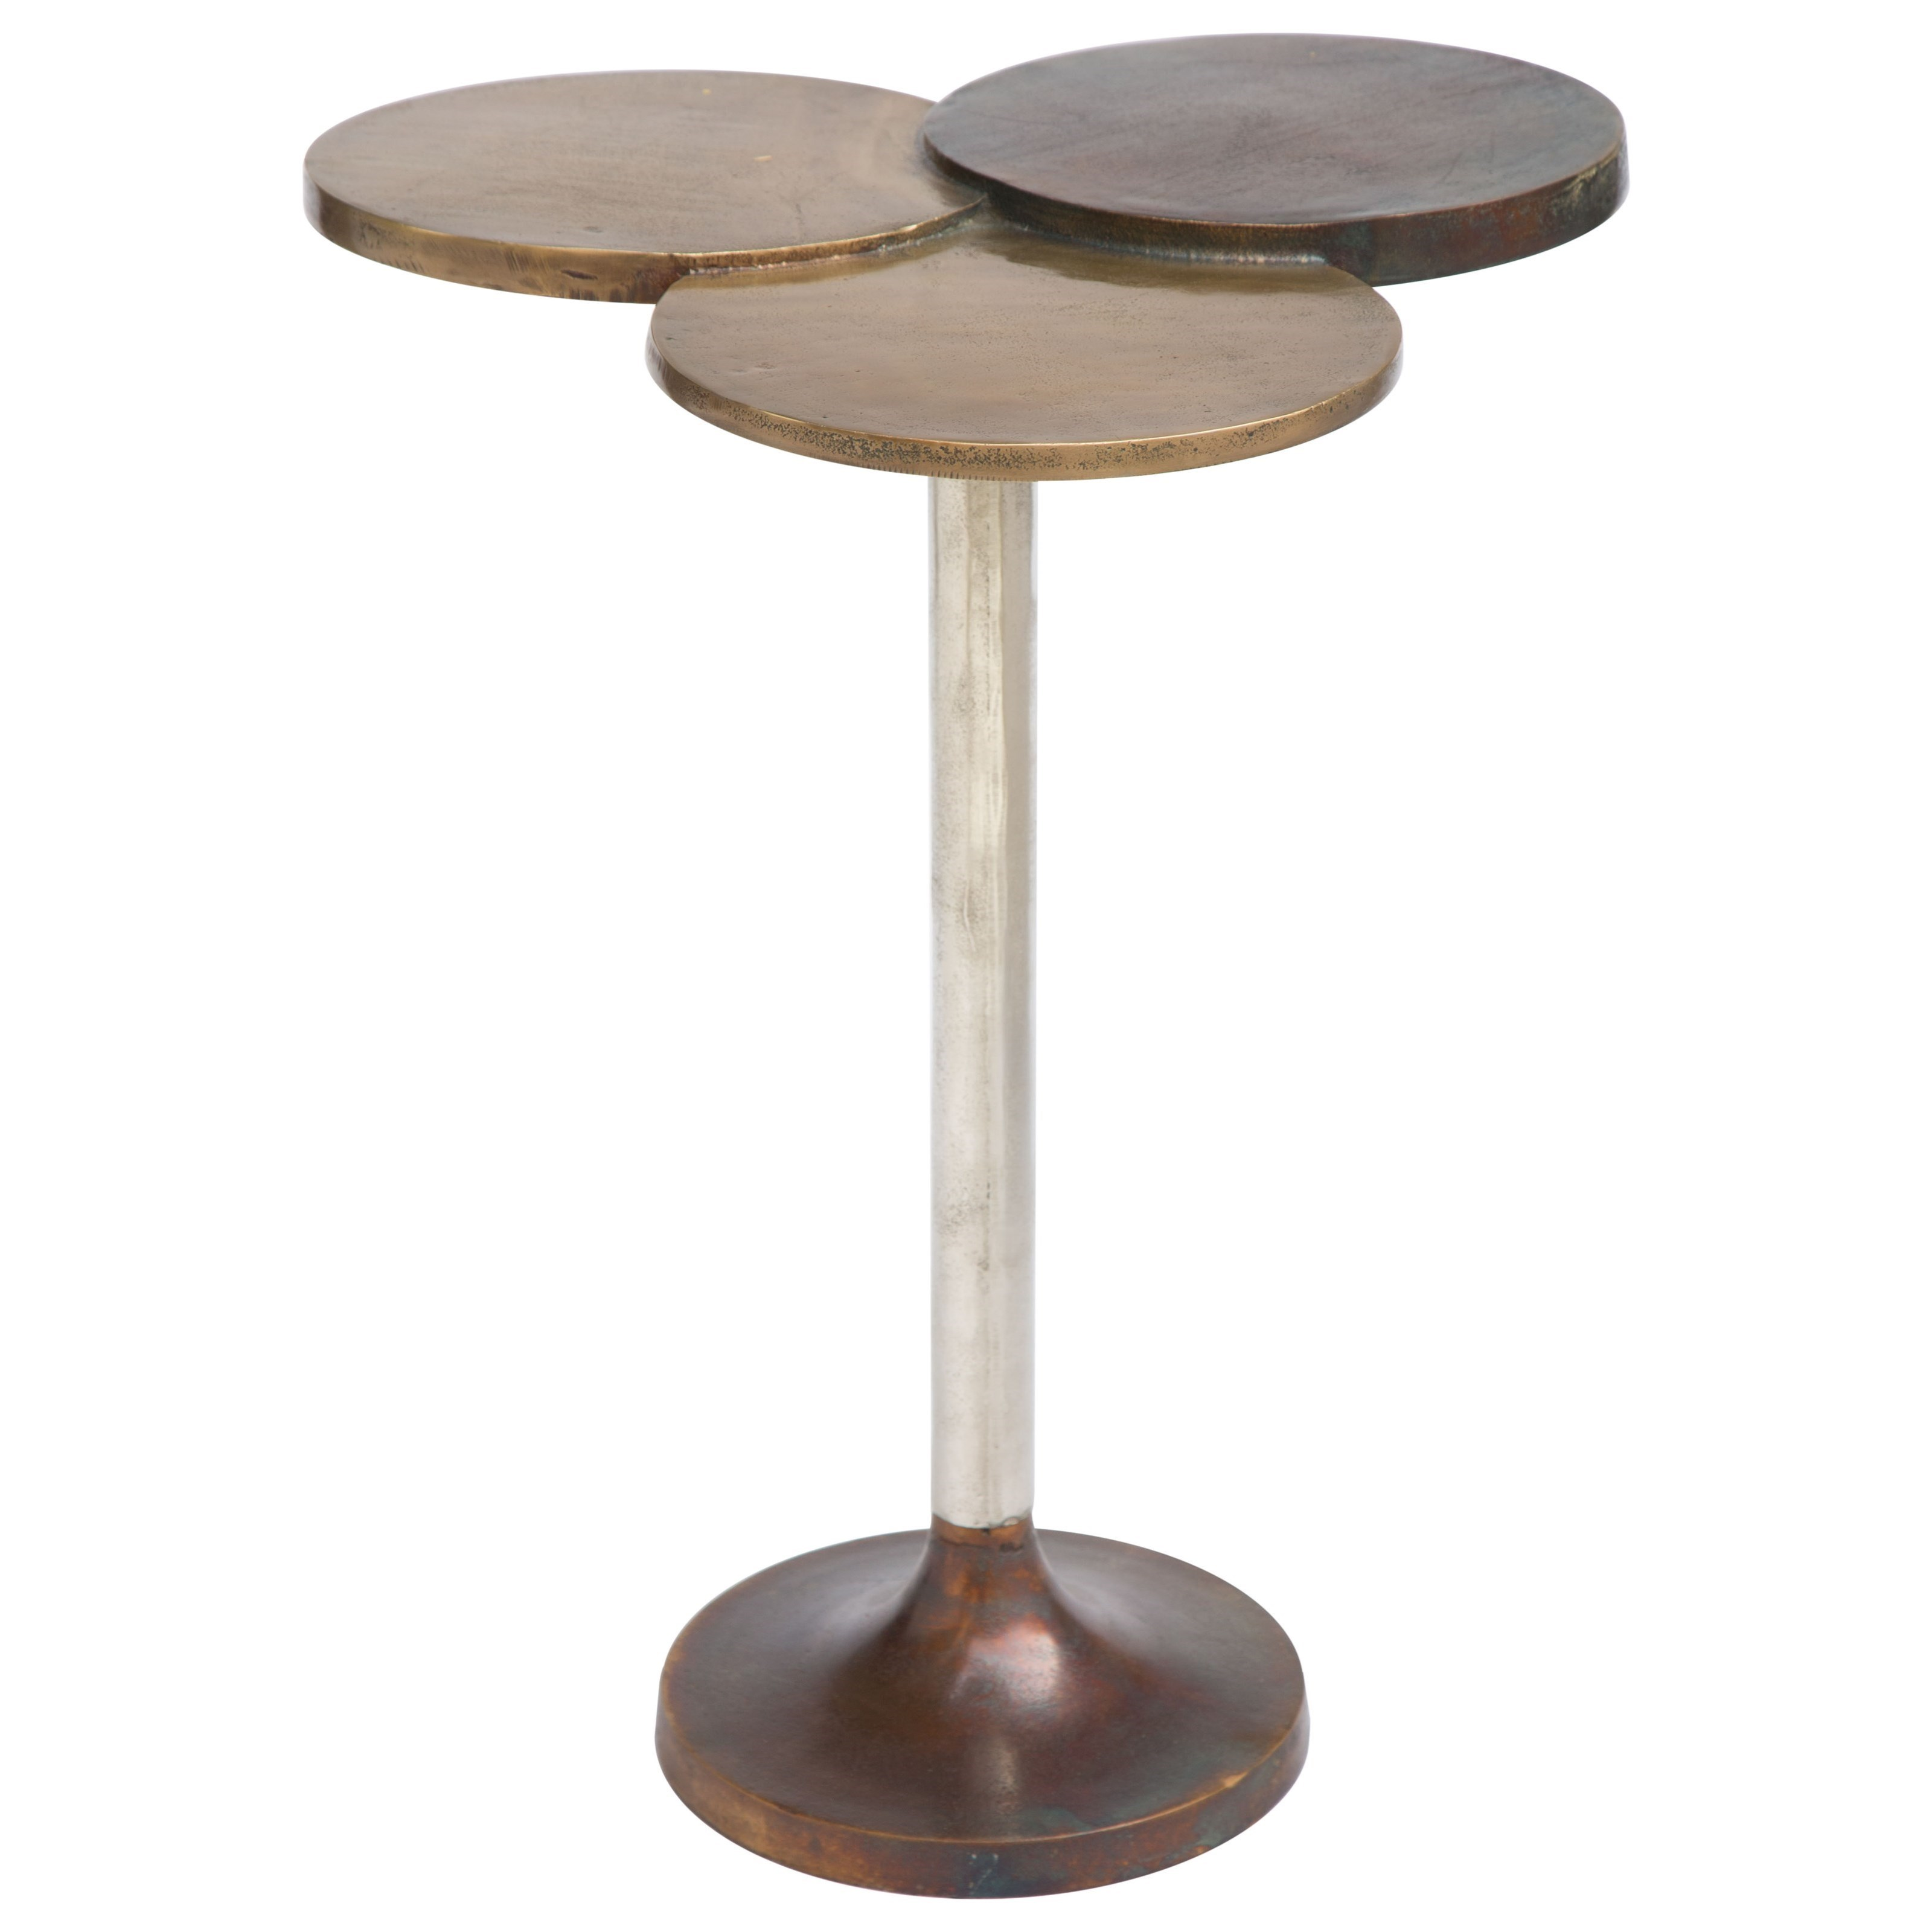 Dundee Antique Brass Accent Table by Zuo at Nassau Furniture and Mattress